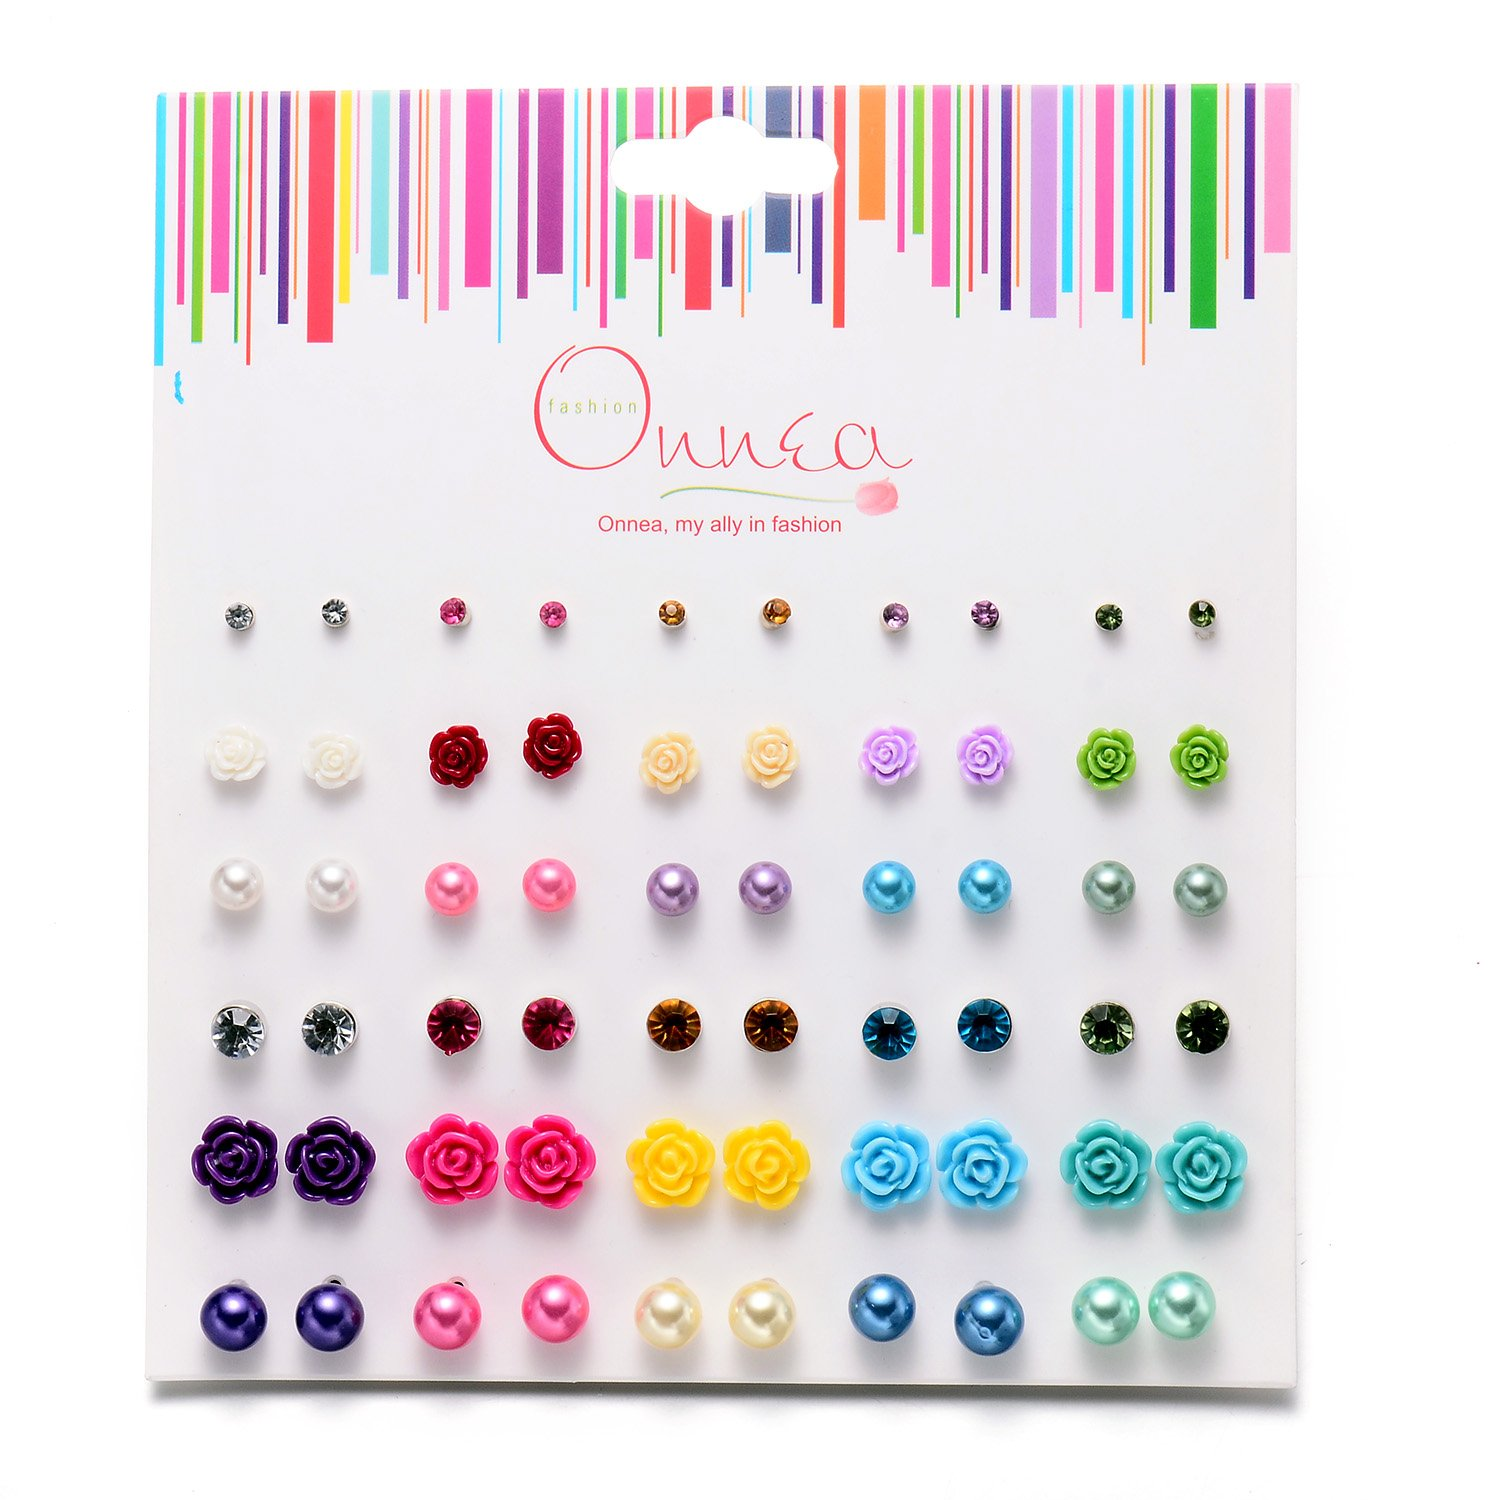 Onnea 30 Pack Stud Earrings Set for Girls Assorted Multiple Ball Crystal Rose Flower